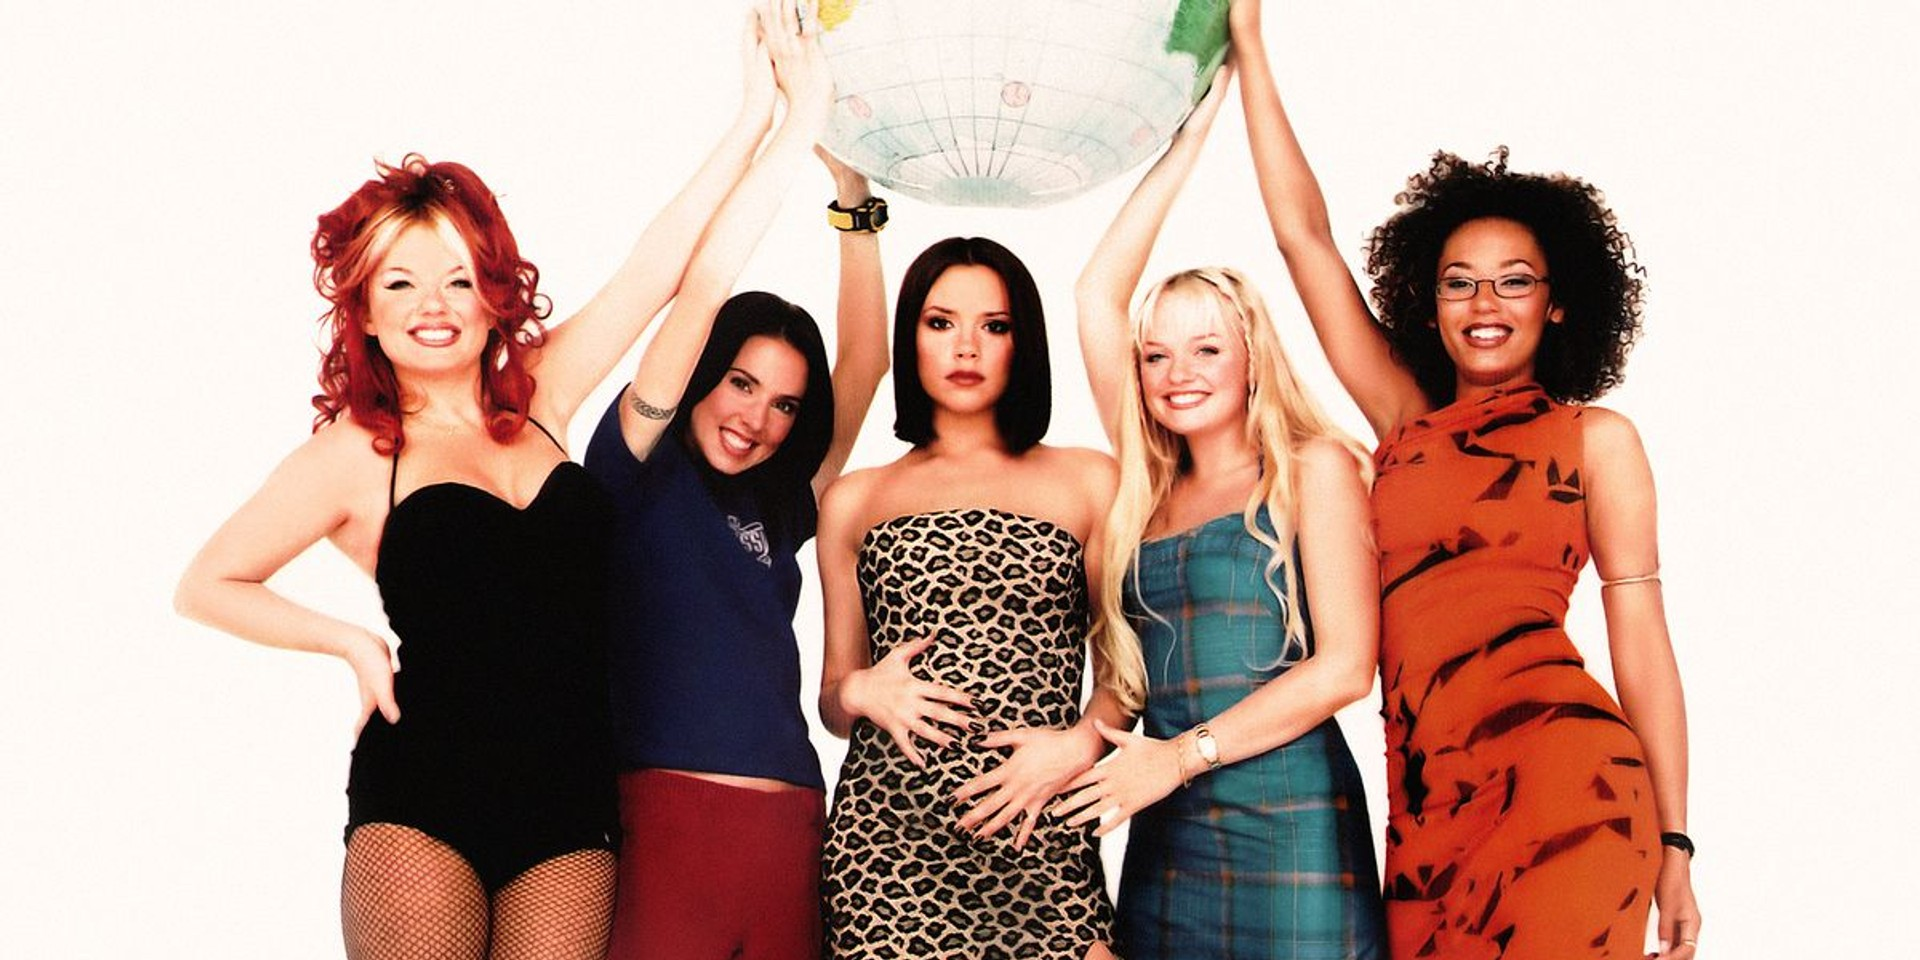 The Spice Girls are reuniting for new projects – but a tour is unlikely